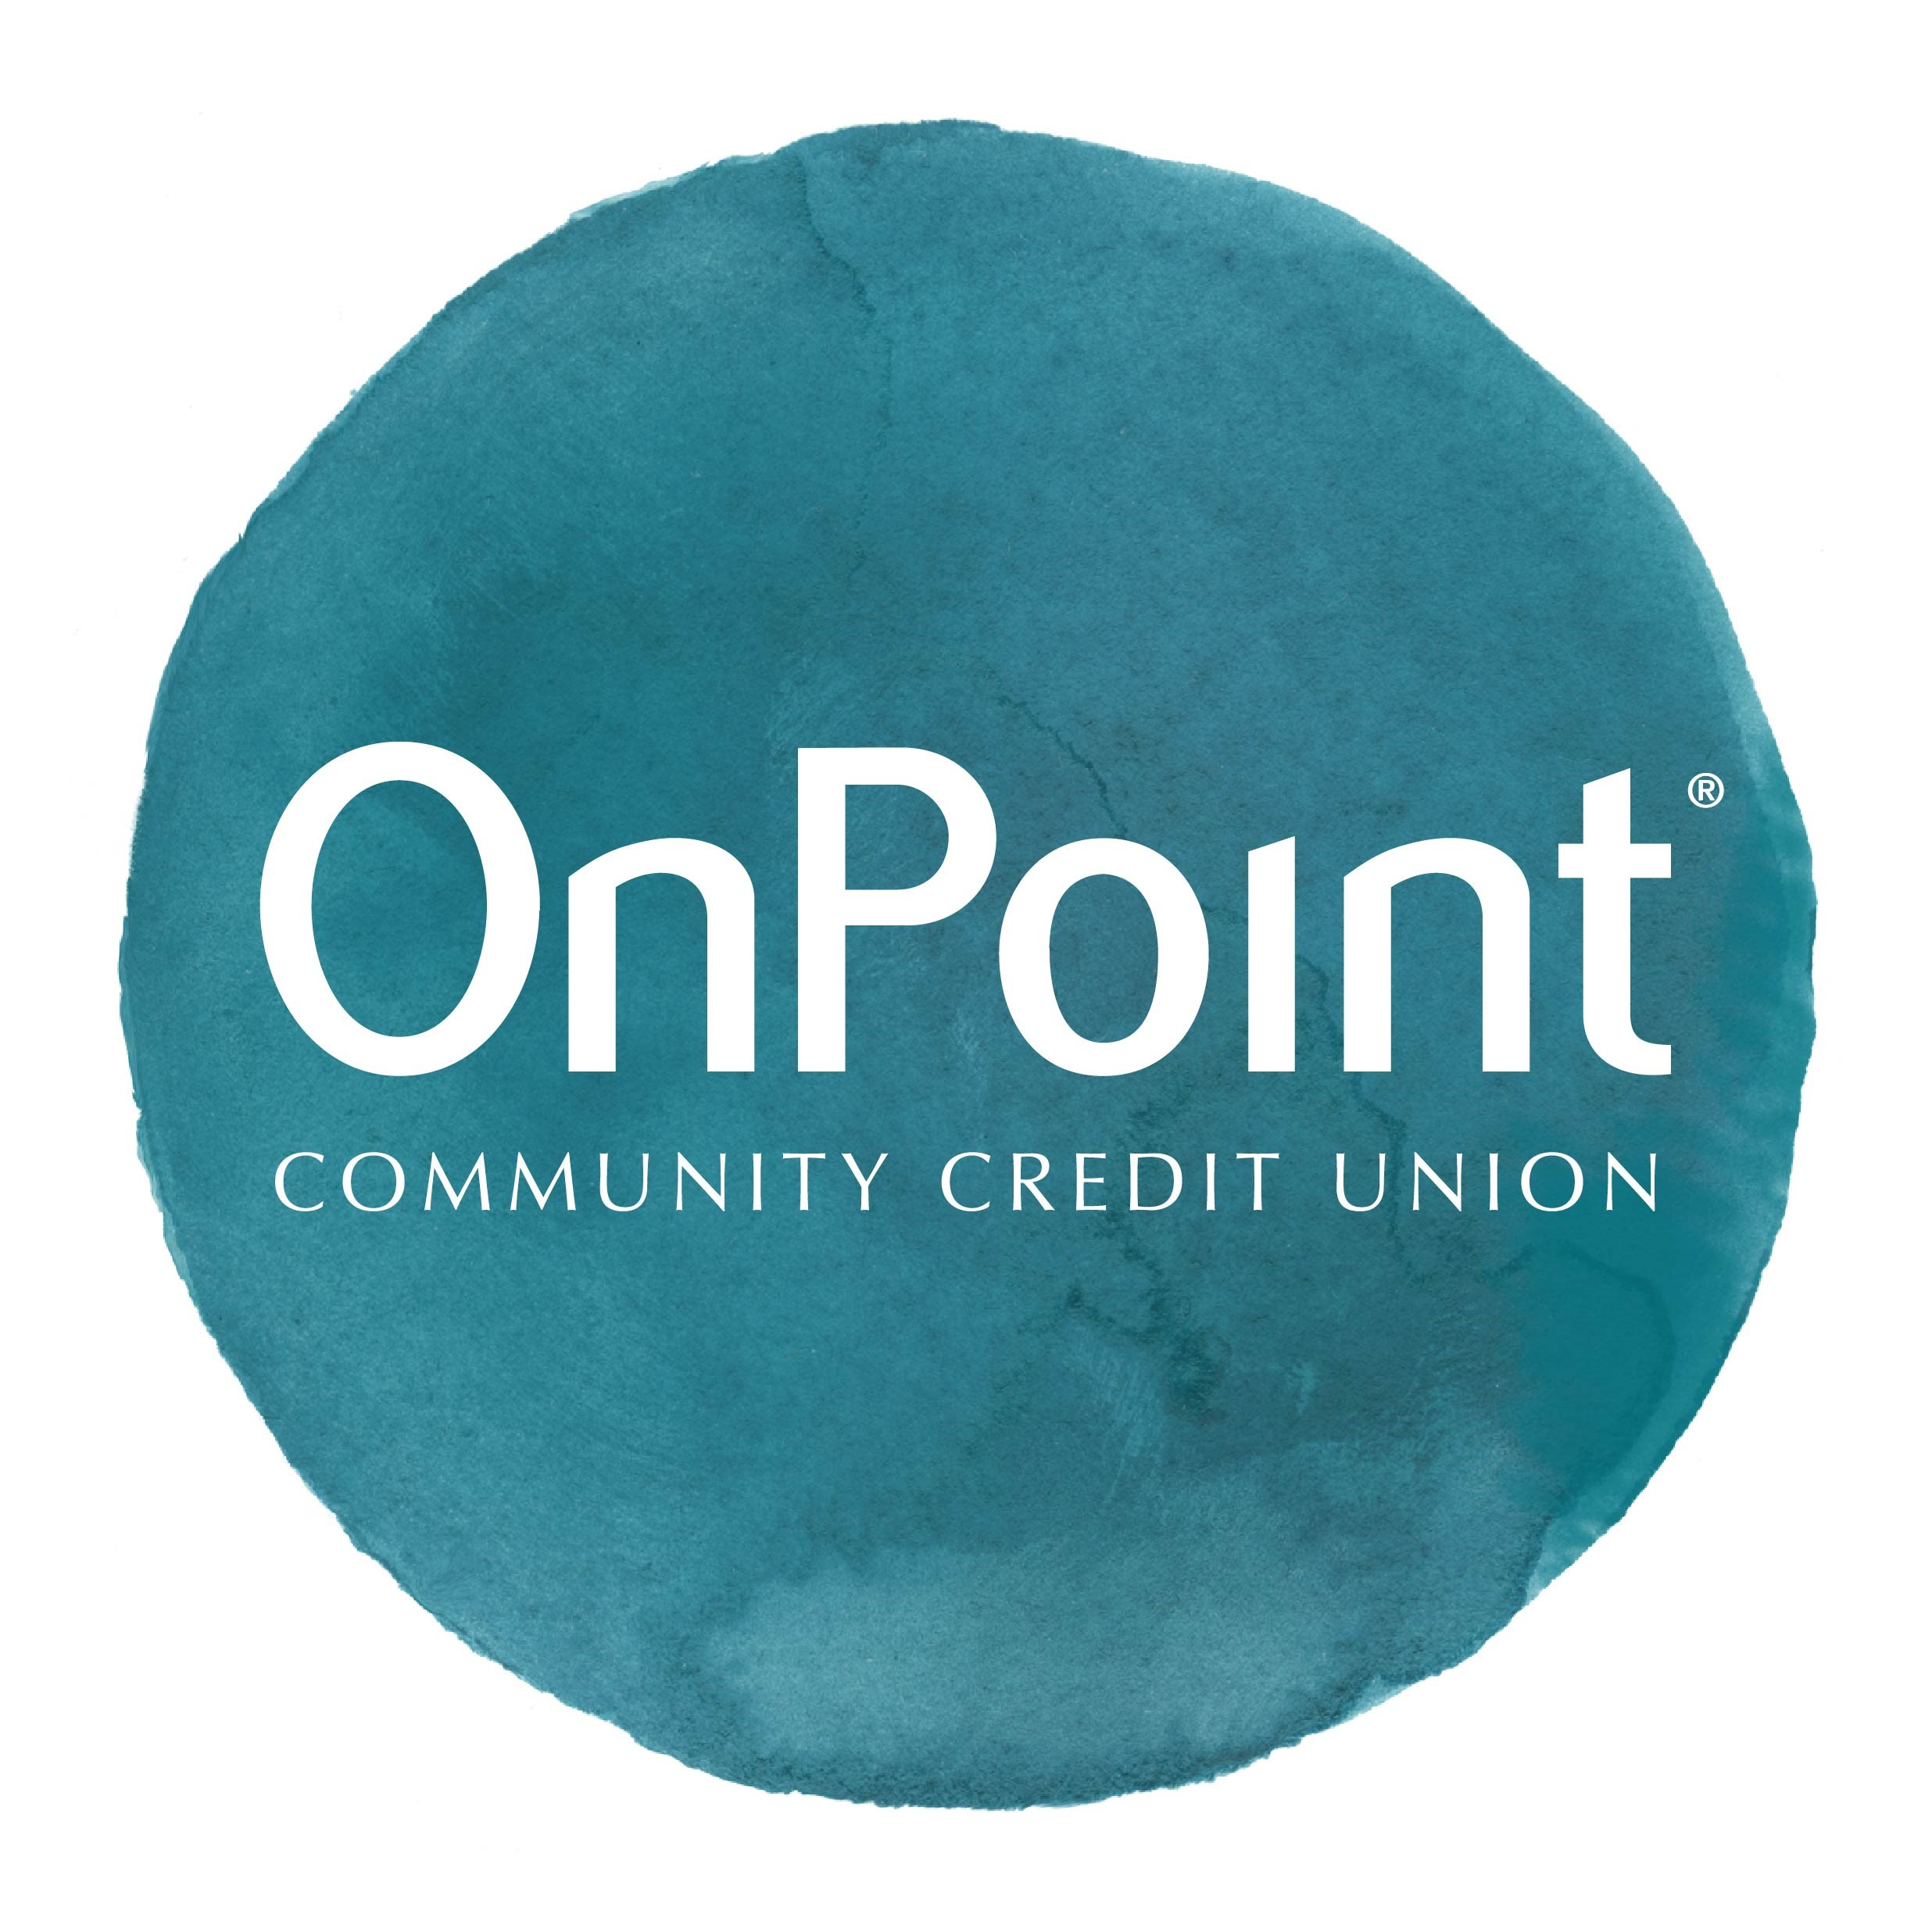 OnPoint Community Credit Union